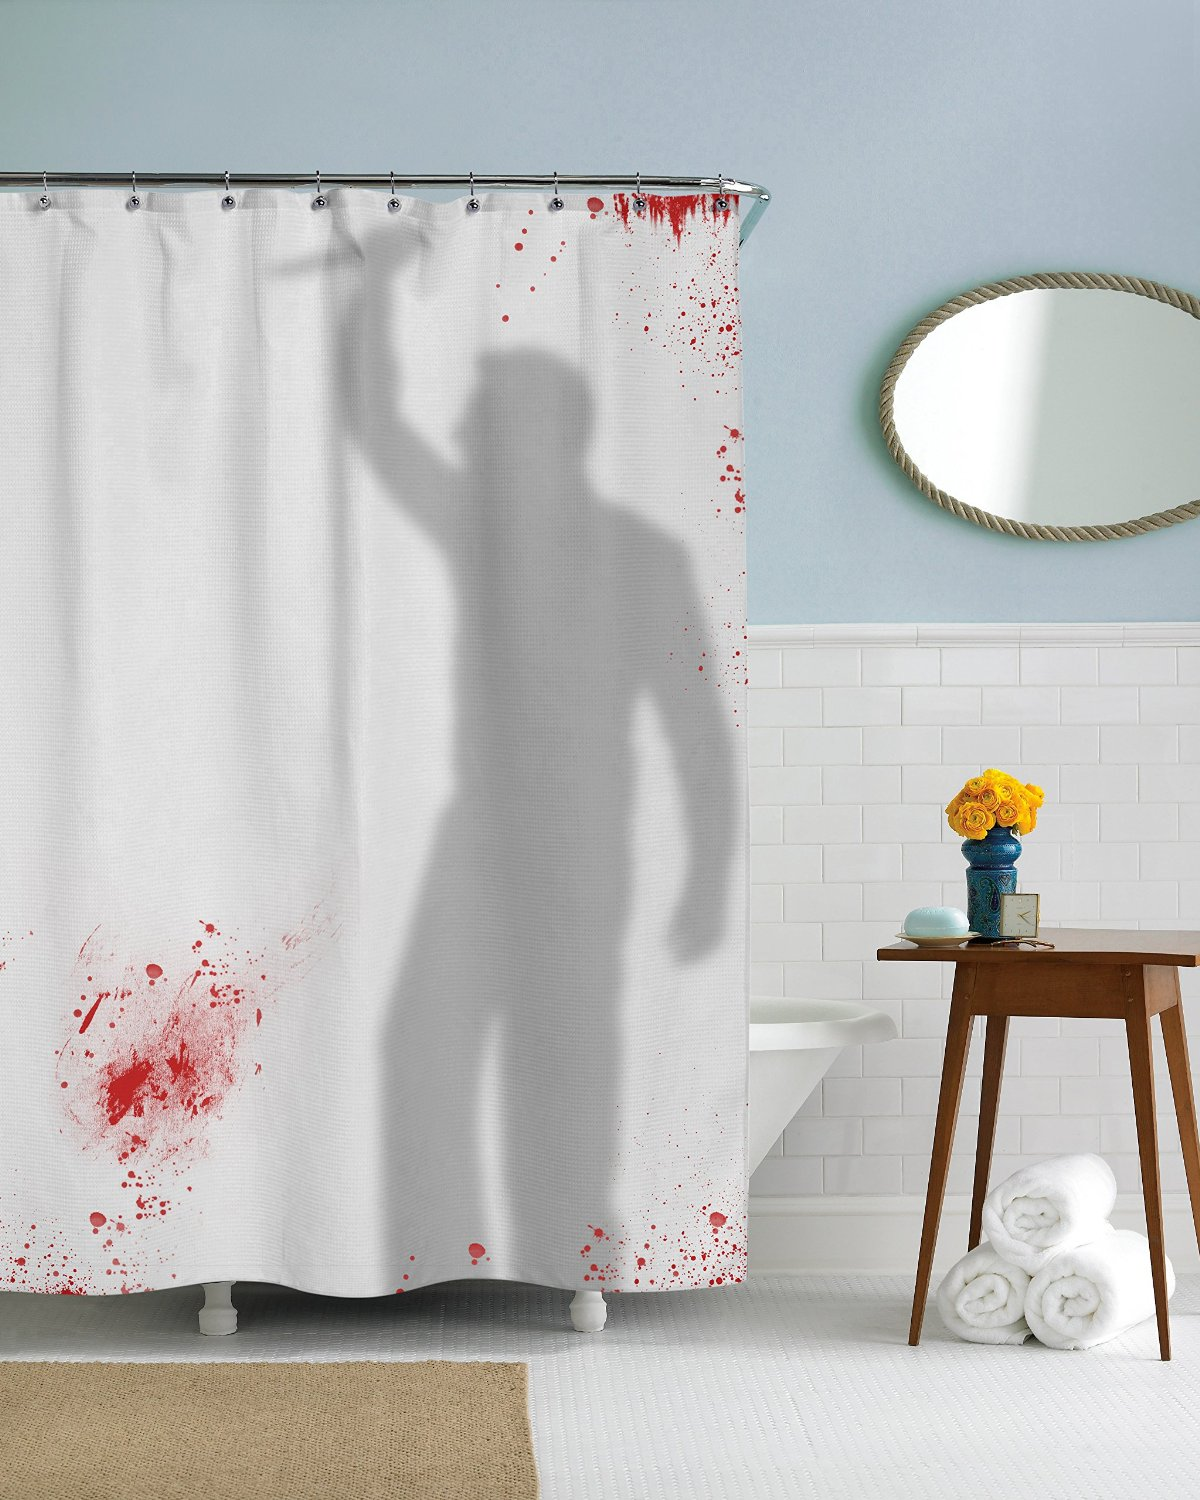 Funny Shower Curtains For Sale - Psycho killer shower curtain horror funny